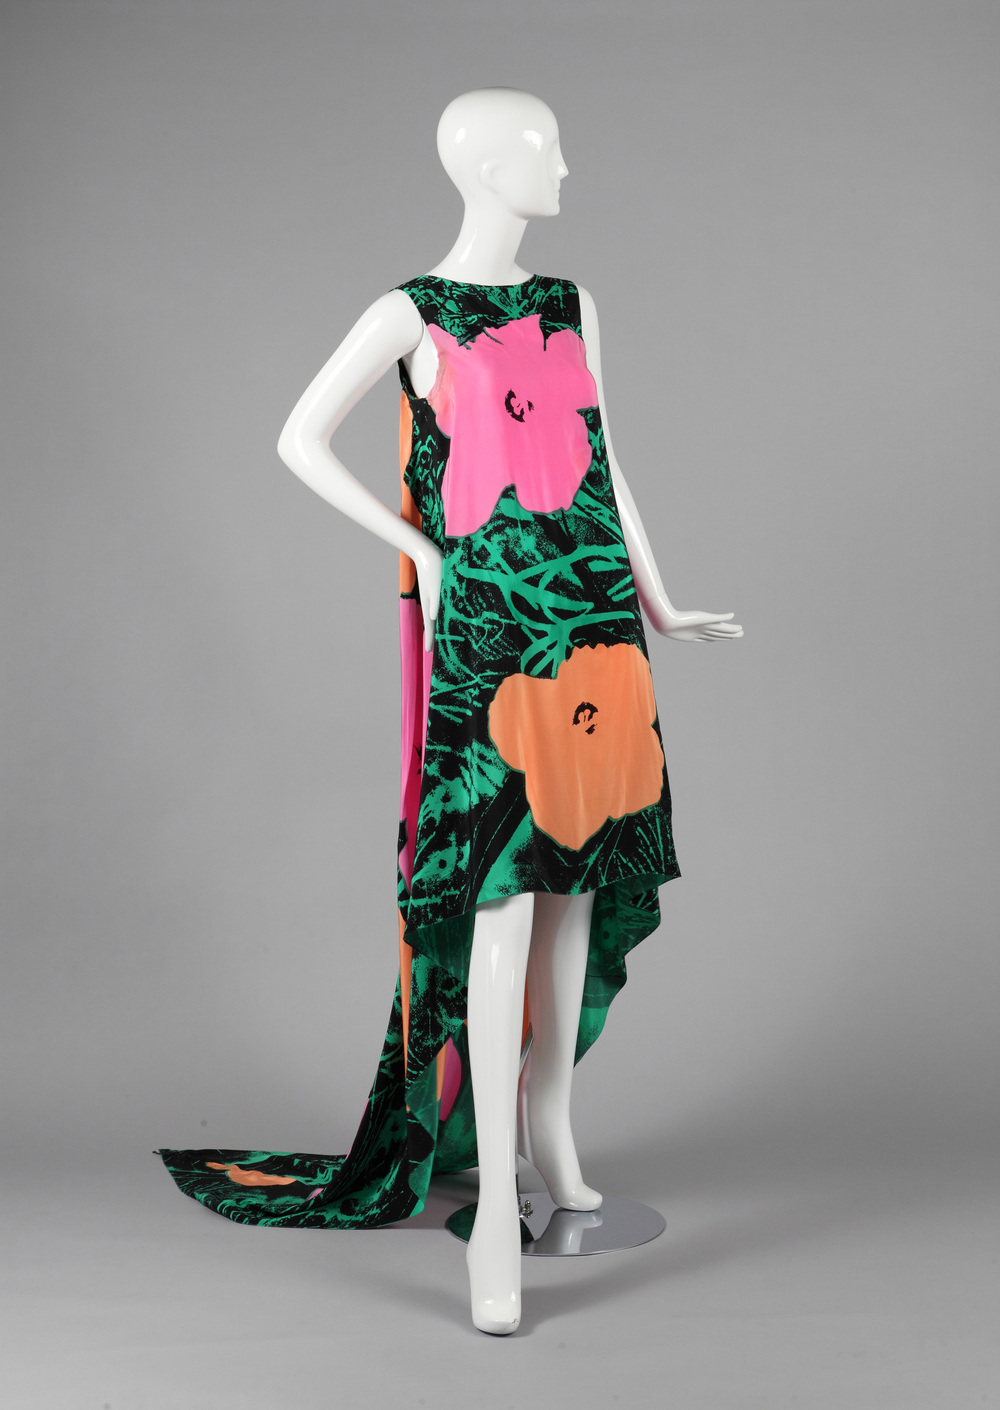 15_Halston_Evening_Dress_Flowers_Motif_Silk_knit_and_elastic_ca1972_Lesley_Frowick.JPG